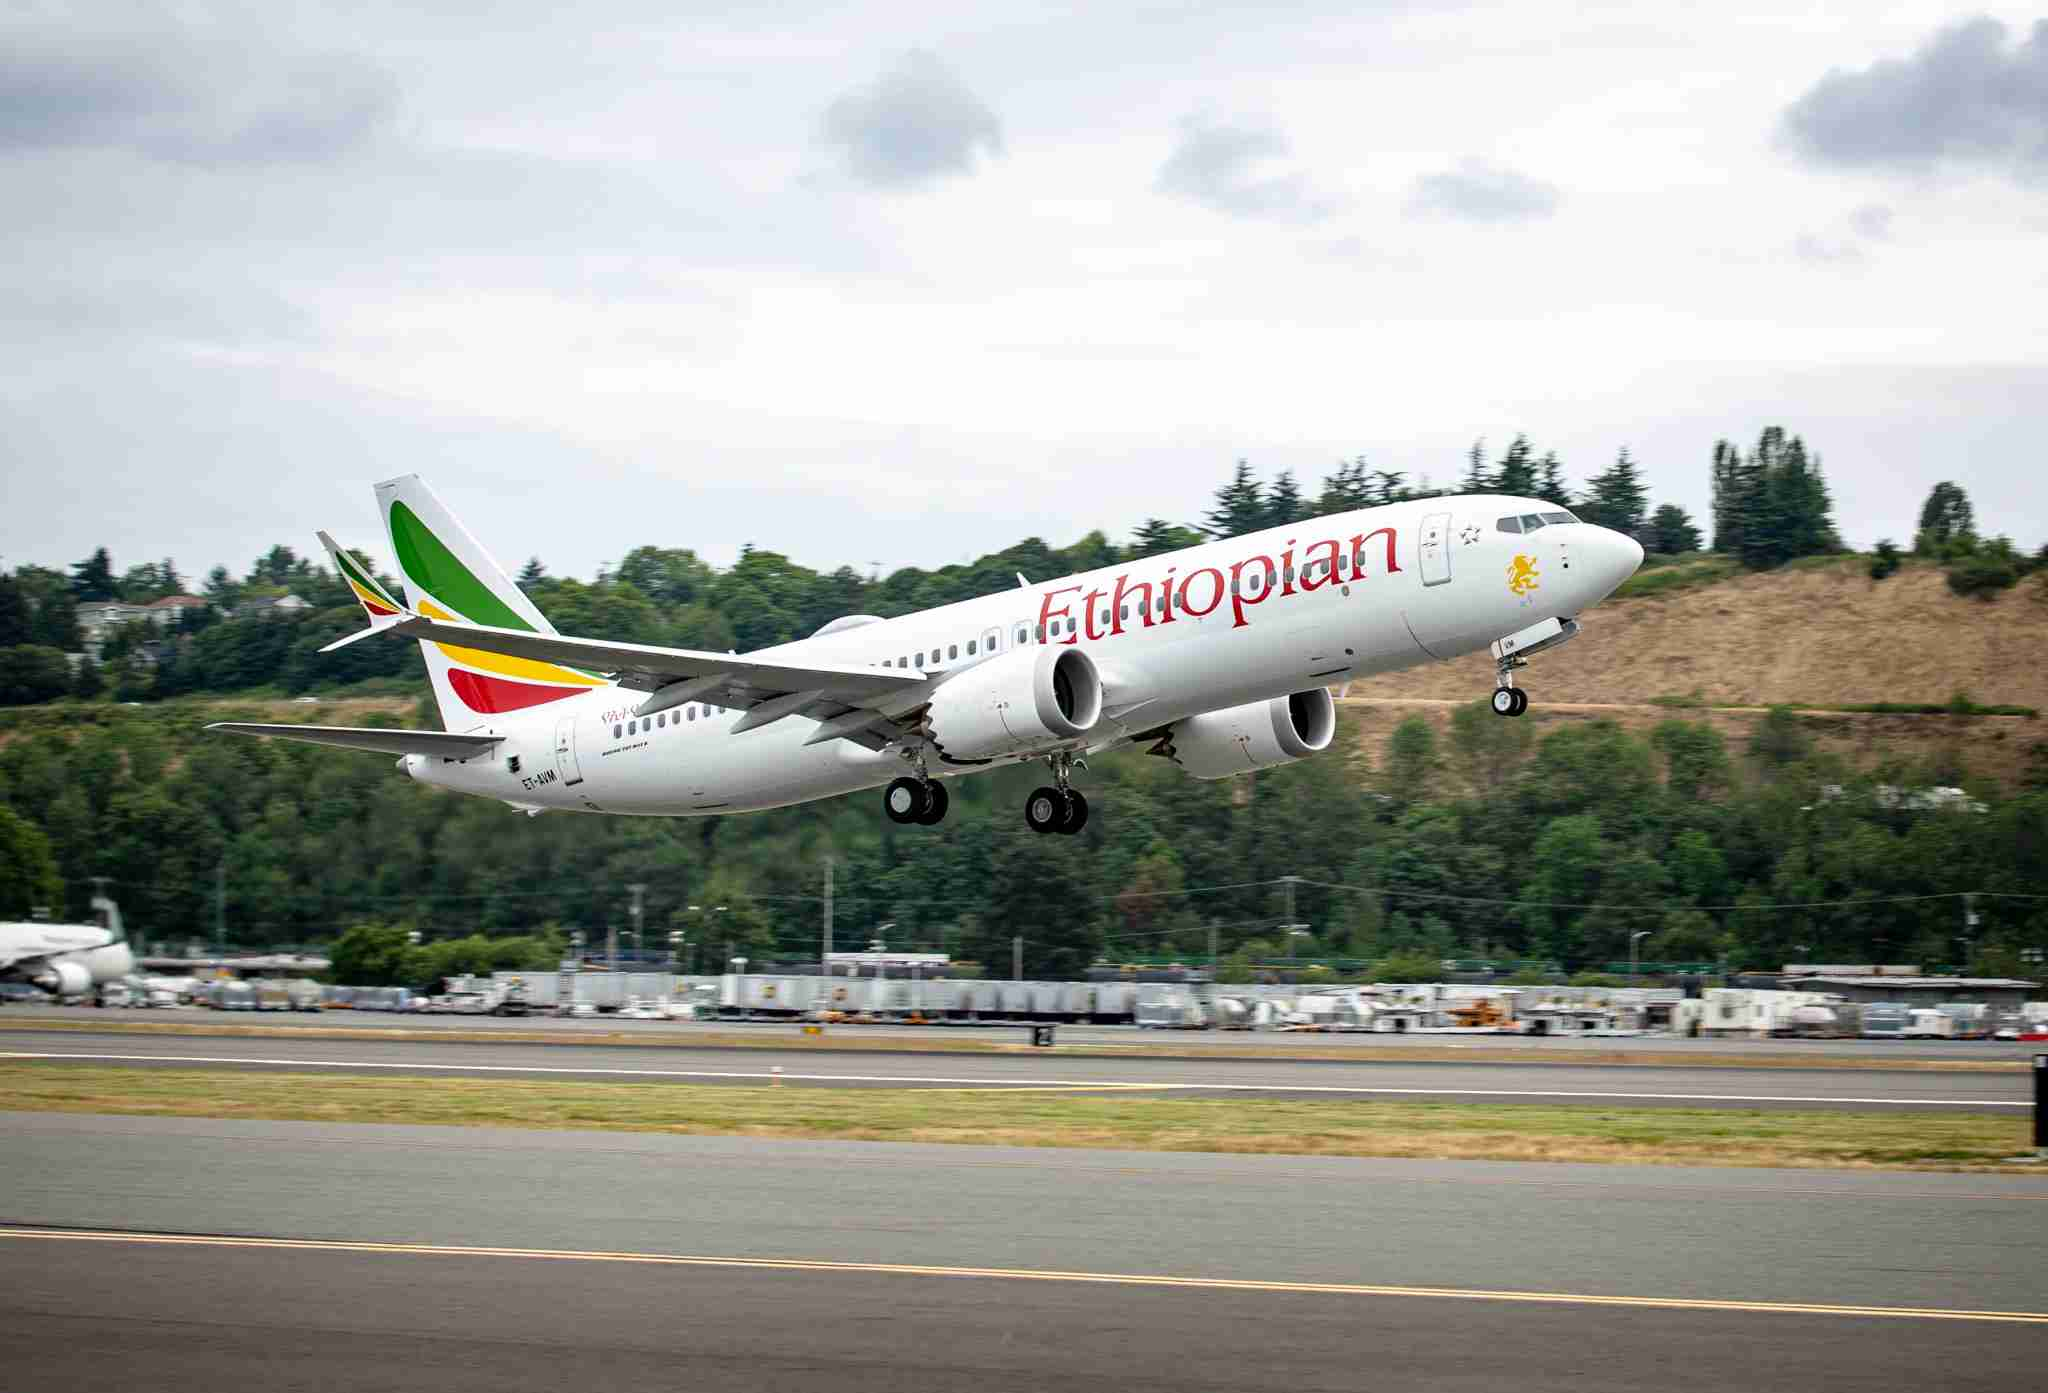 An Ethiopian Airlines Boeing 737 MAX 8 like the aircraft involved in the March 10th crash (Image courtesy of Boeing)